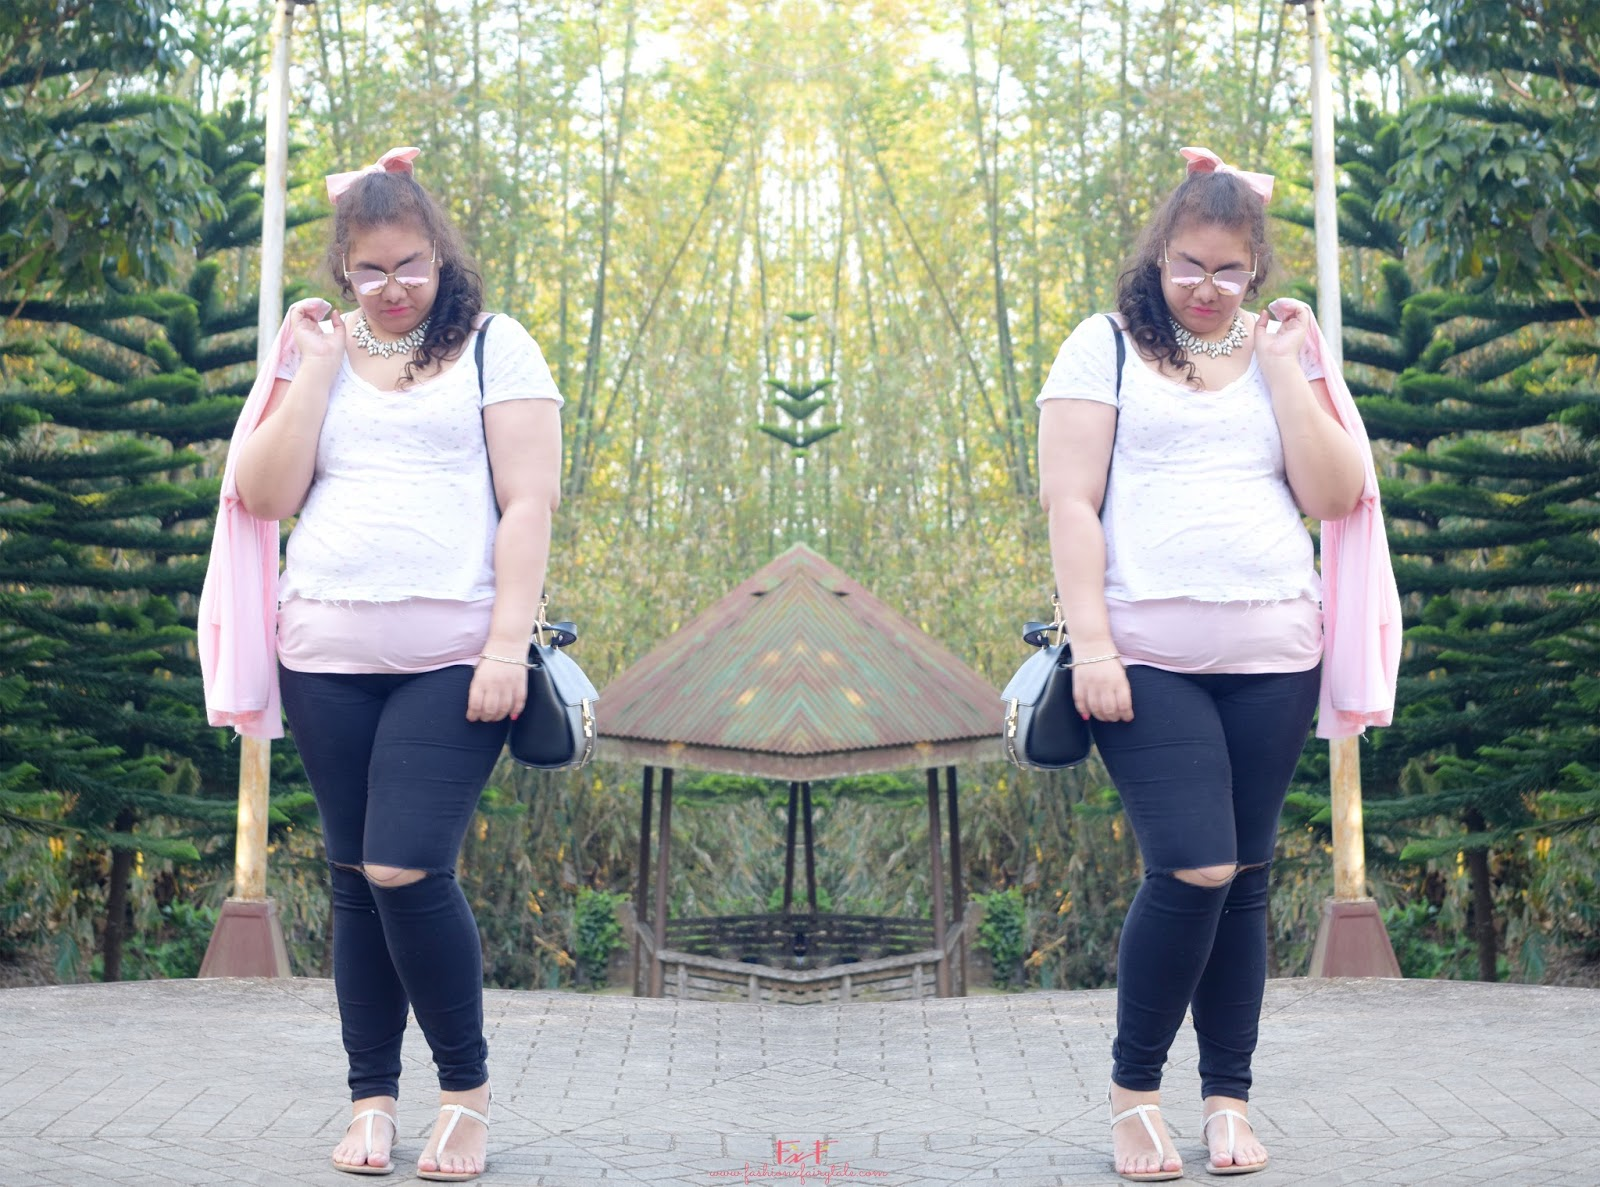 Sassy and Sweet | What I Wore